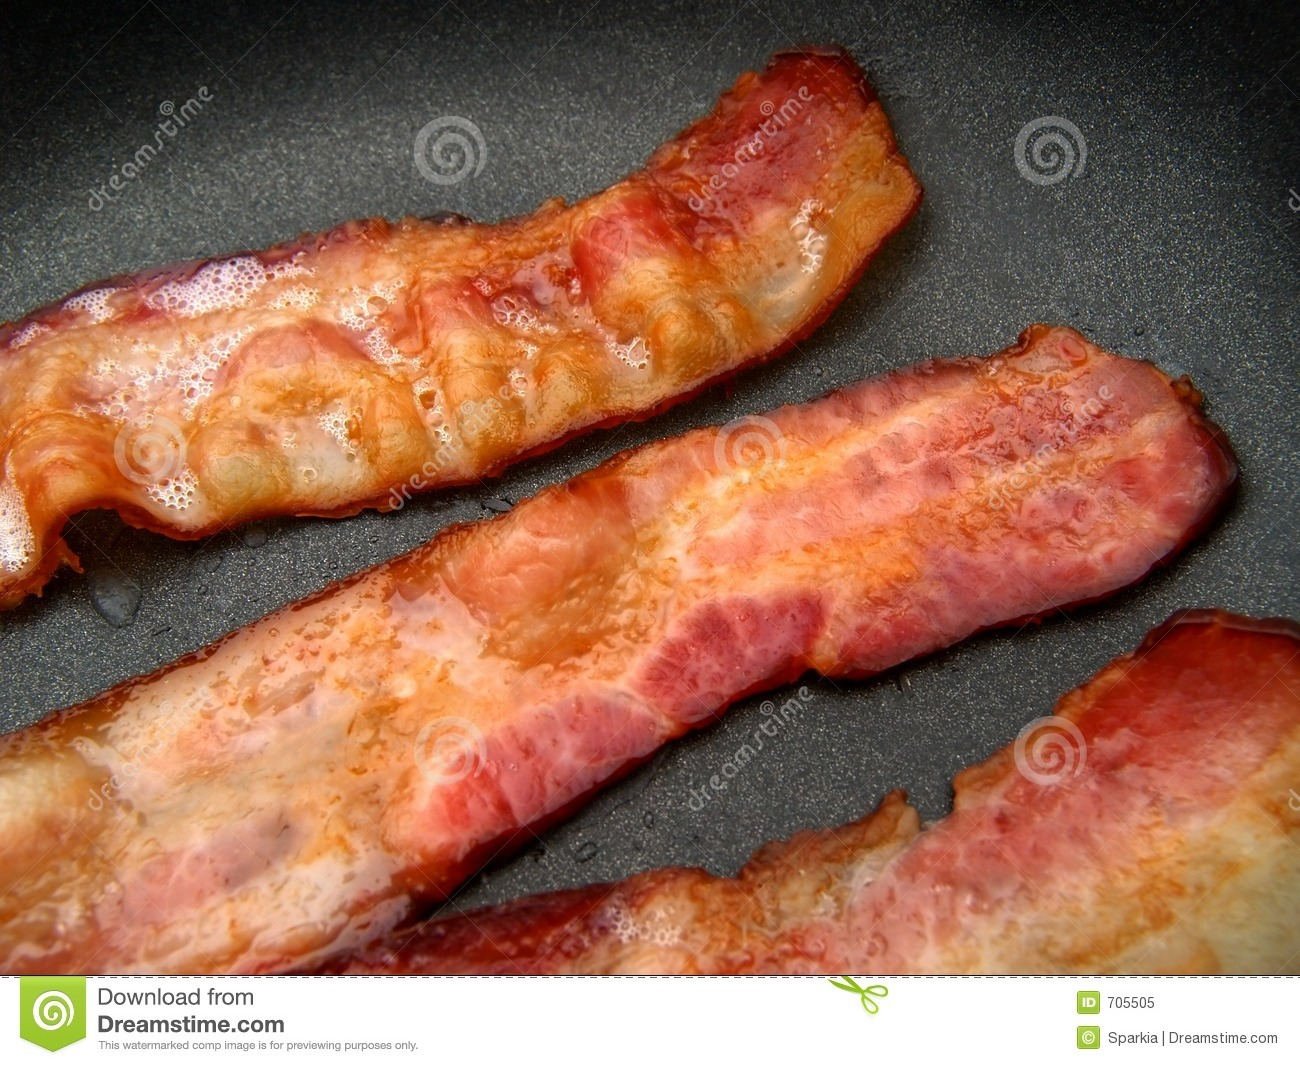 45737fb153a1dcb56091_bacon-frying.jpg